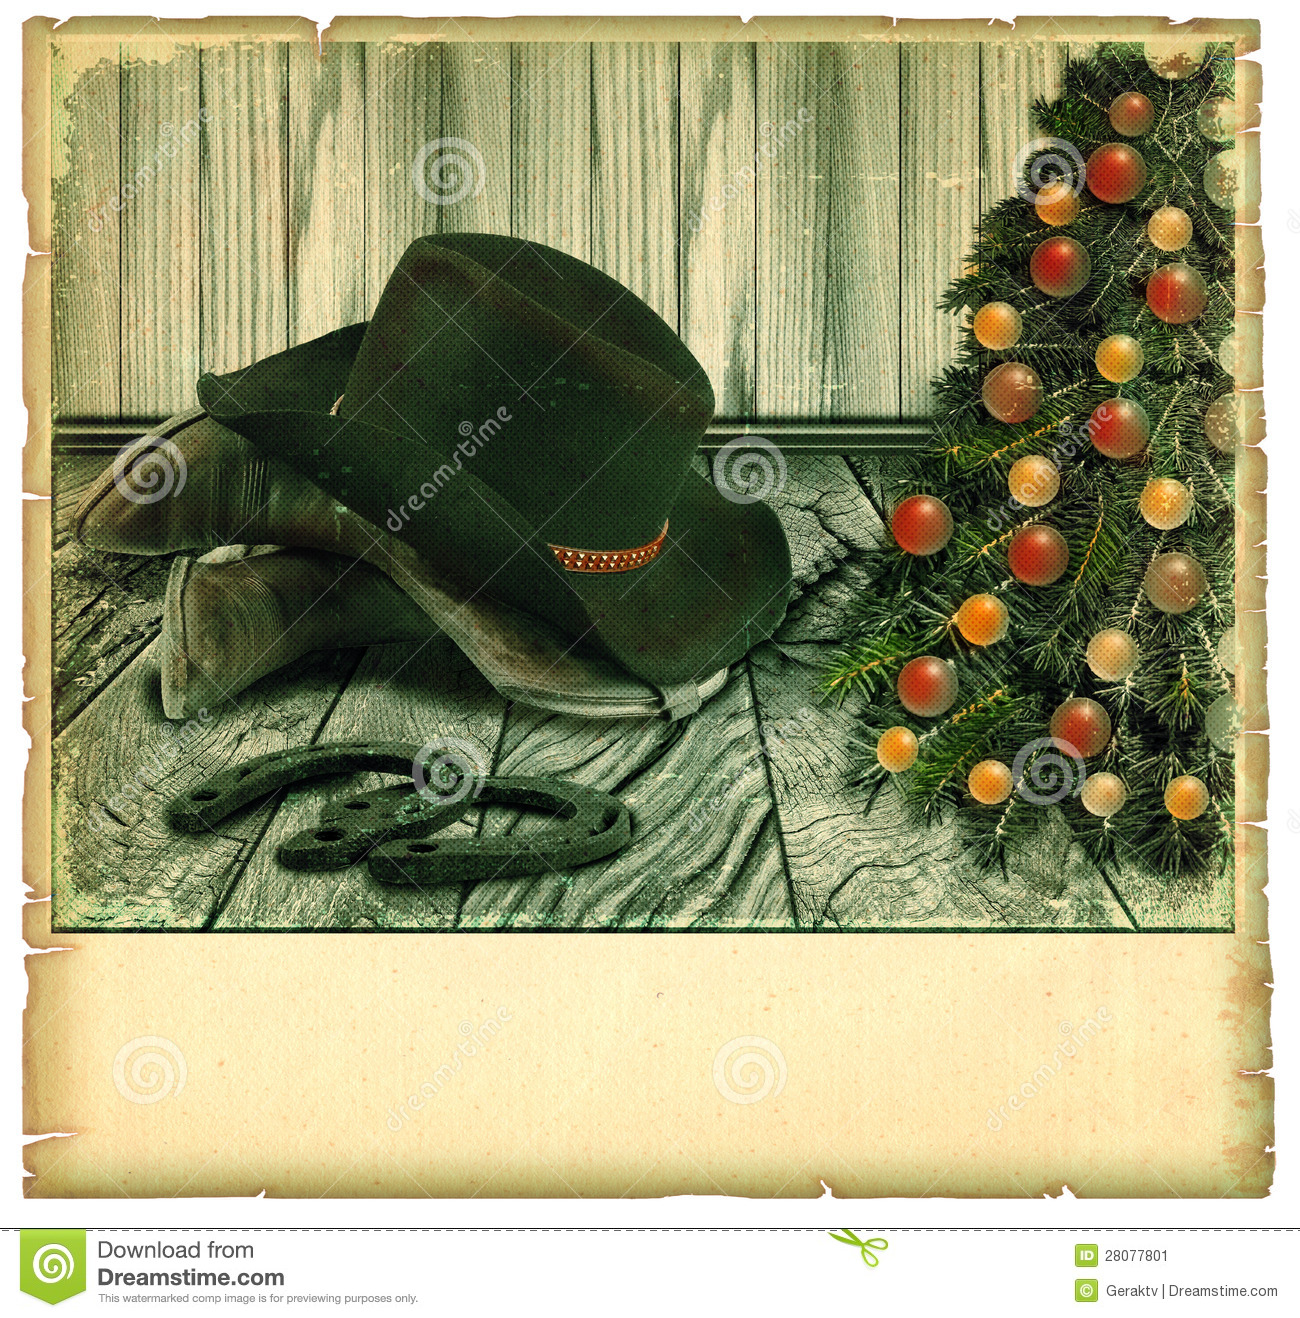 Vintage Cowboy Christmas Card.American Background Stock Image ...